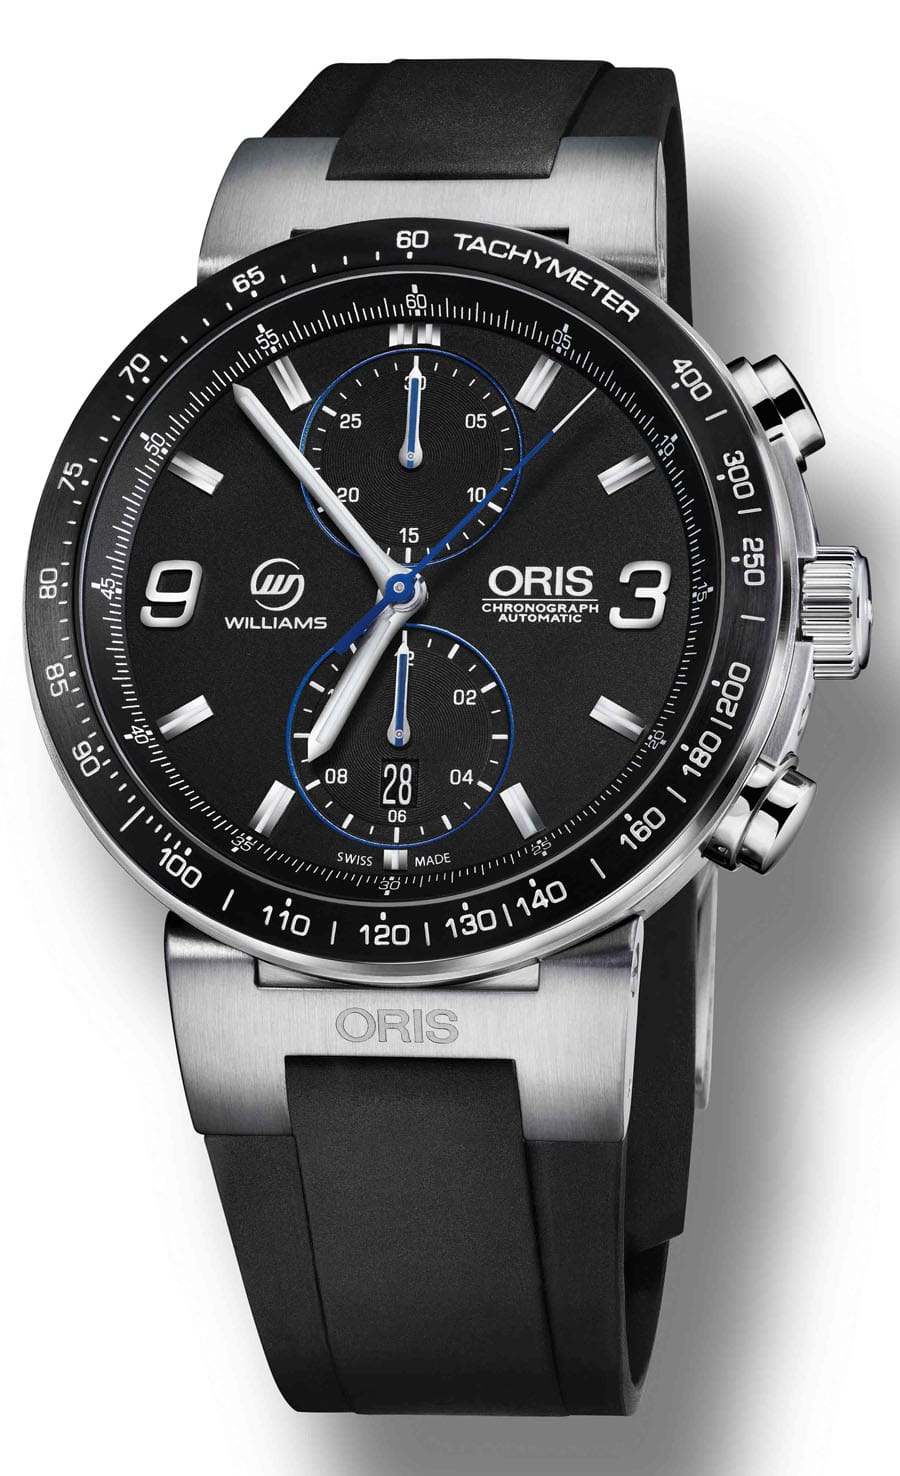 Oris WilliamsF1 600th Race Limited Edition